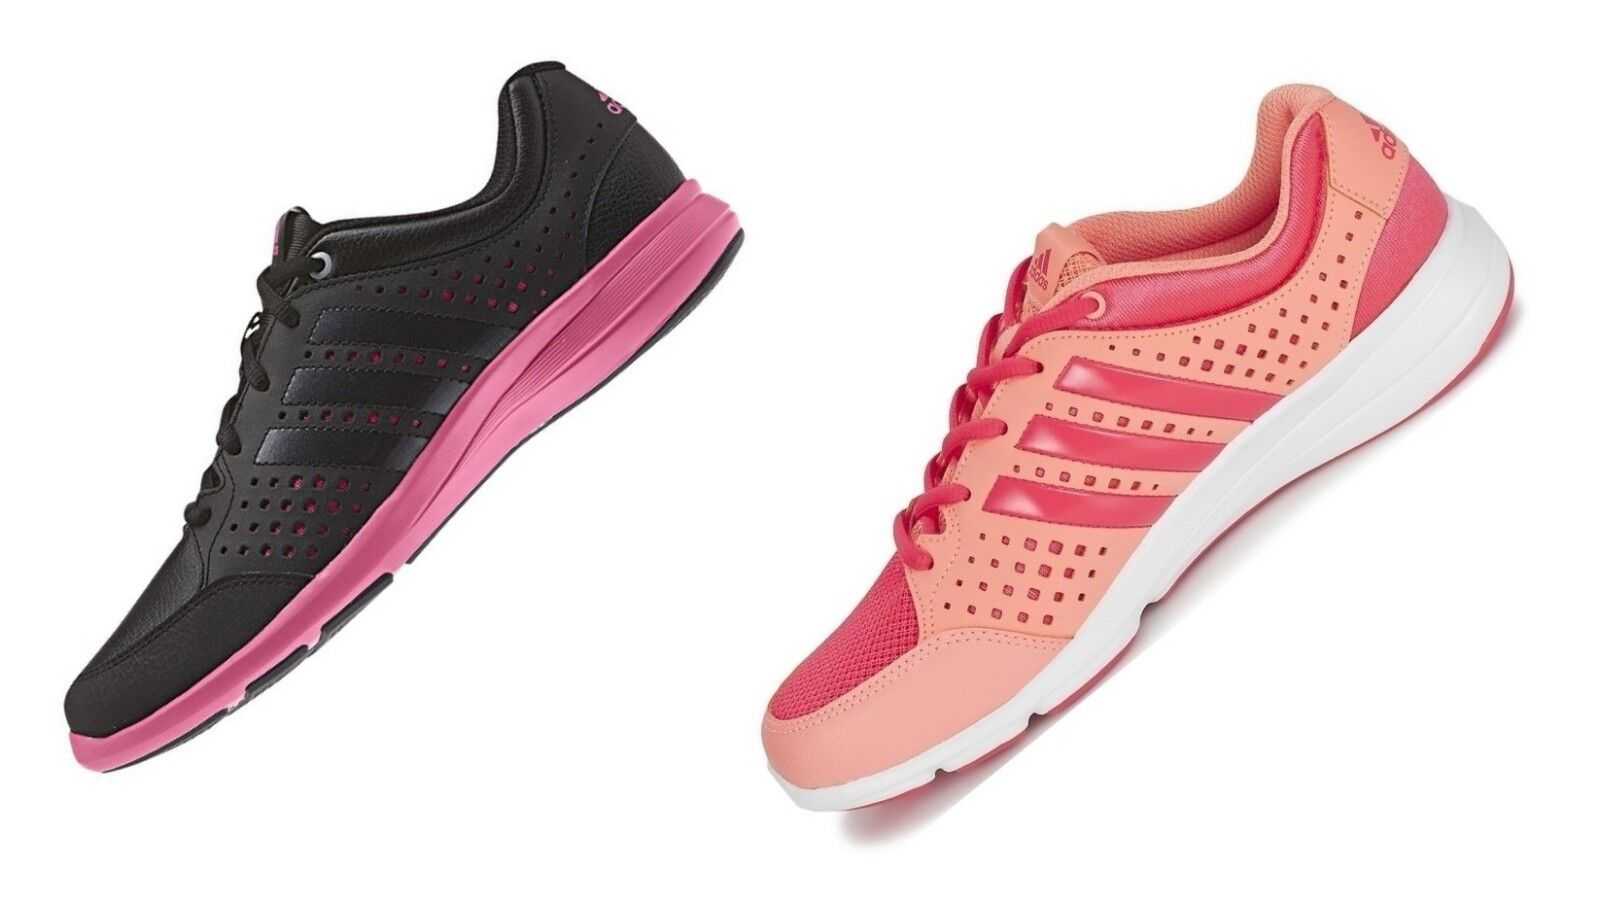 reputable site 9cff6 5c8ea Adidas Ladies Arianna III Trainers M18149 Black-Pink AF5864 Red-White  oprduu2843-Women s Trainers